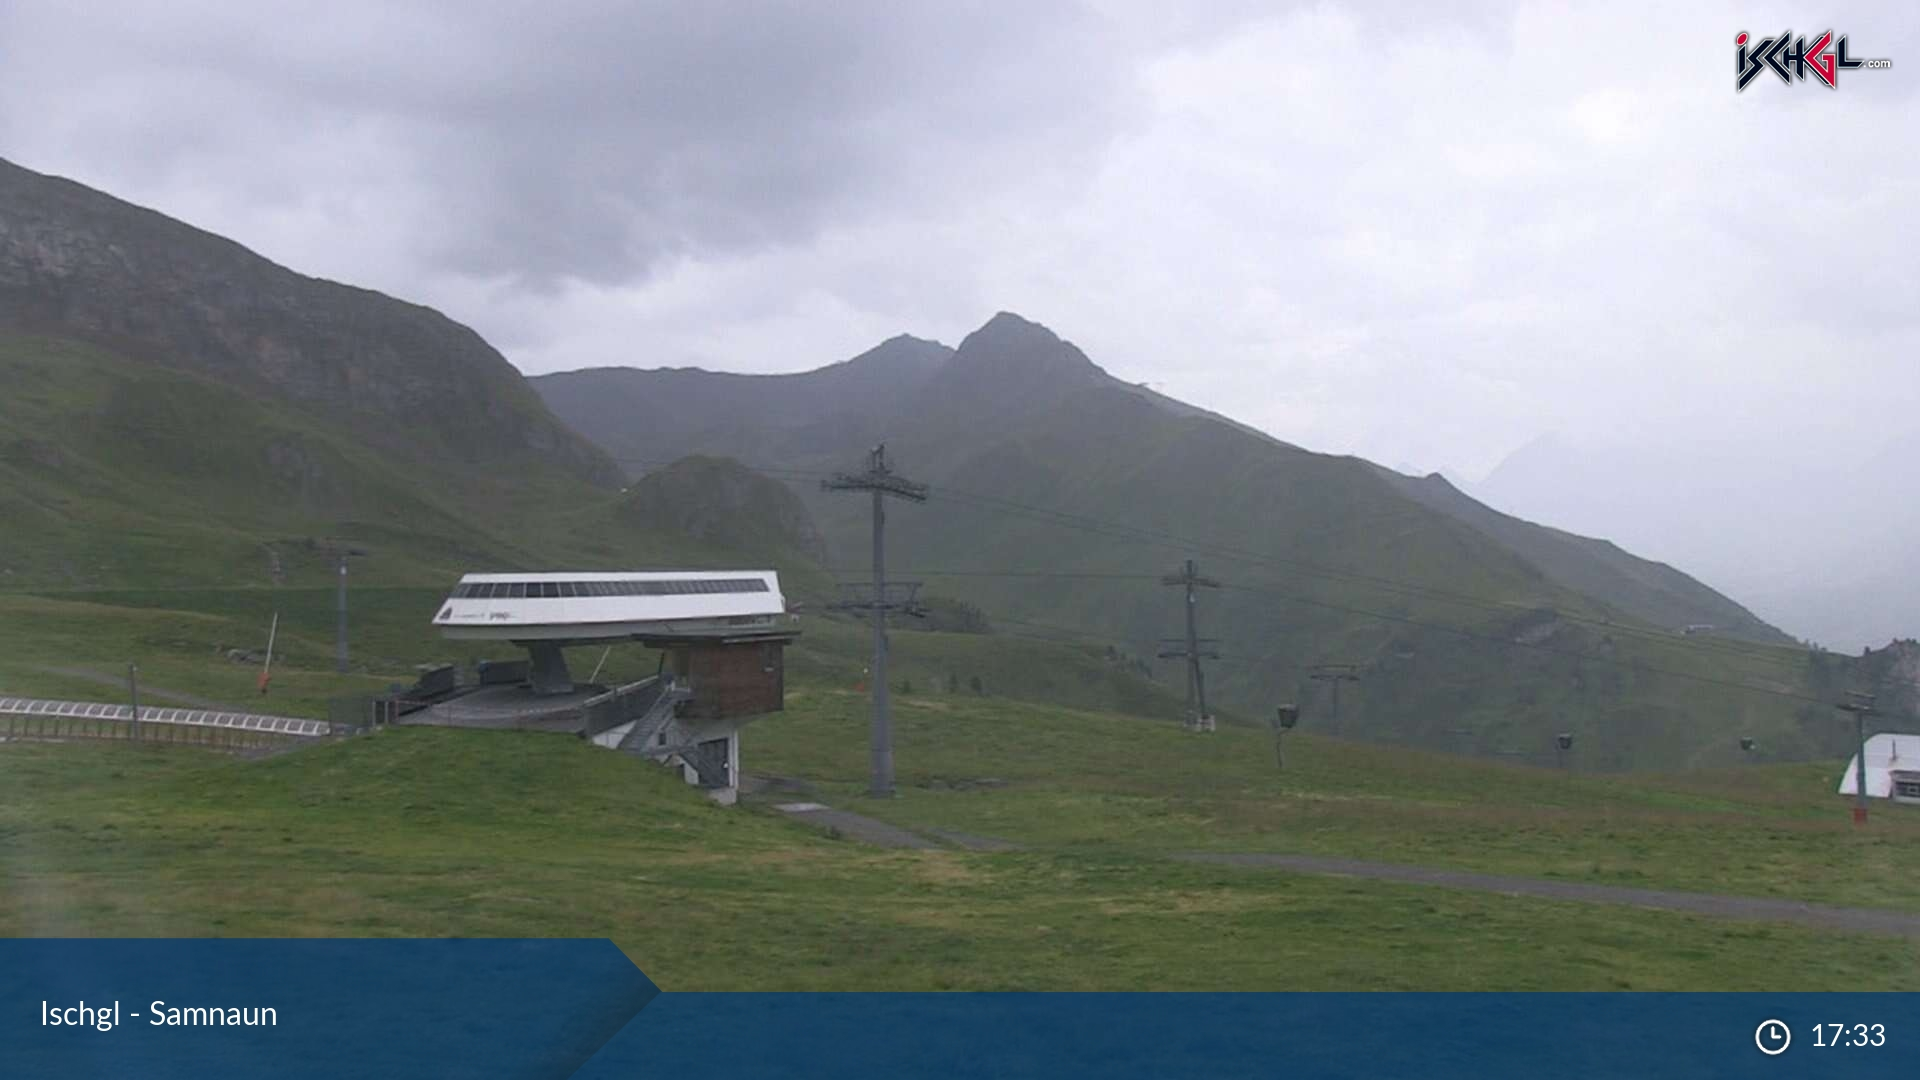 Webcam Ischgl